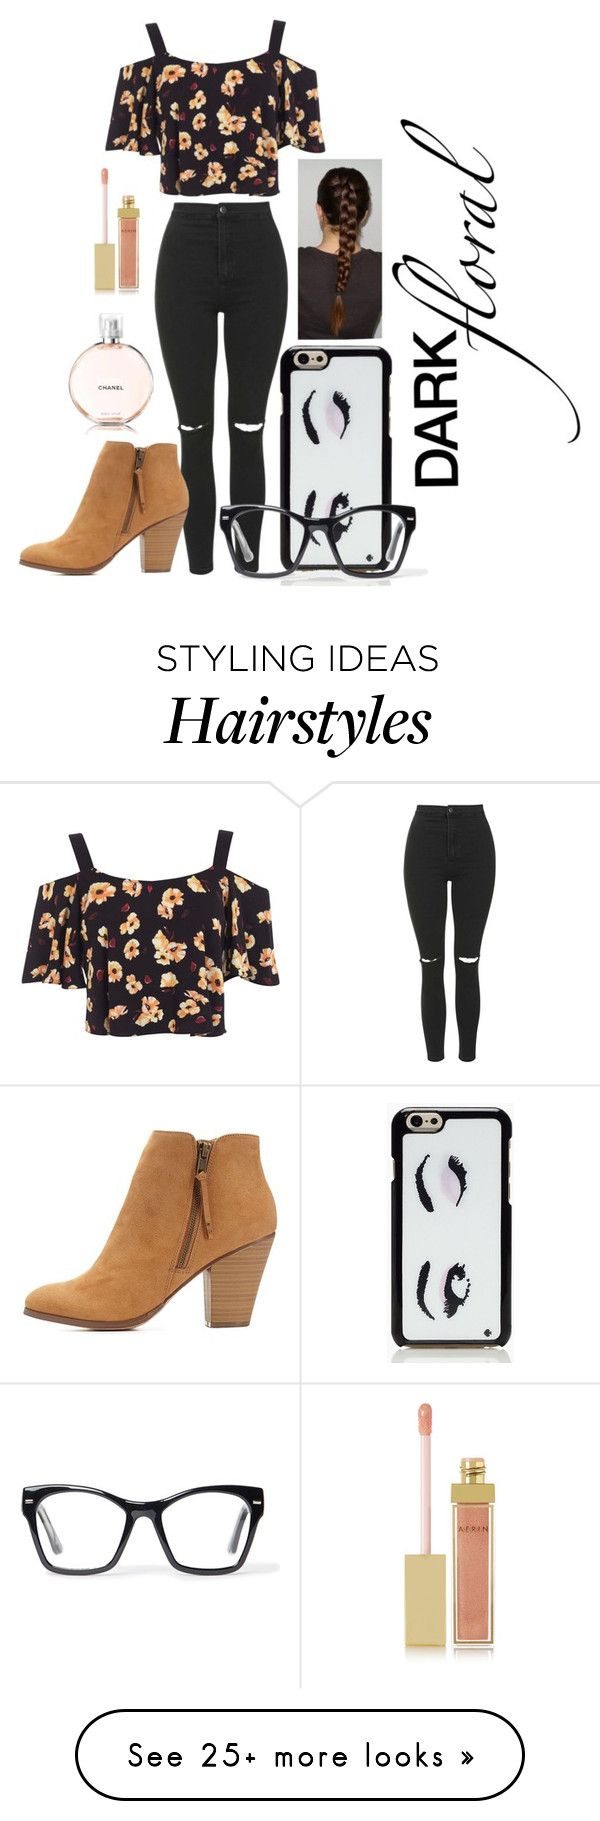 """""""Dark Floral"""" by fashiongirlxcx on Polyvore featuring Miss Selfridge, Topshop, Charlotte Russe, Kate Spade, Spitfire, AERIN and darkfloral"""